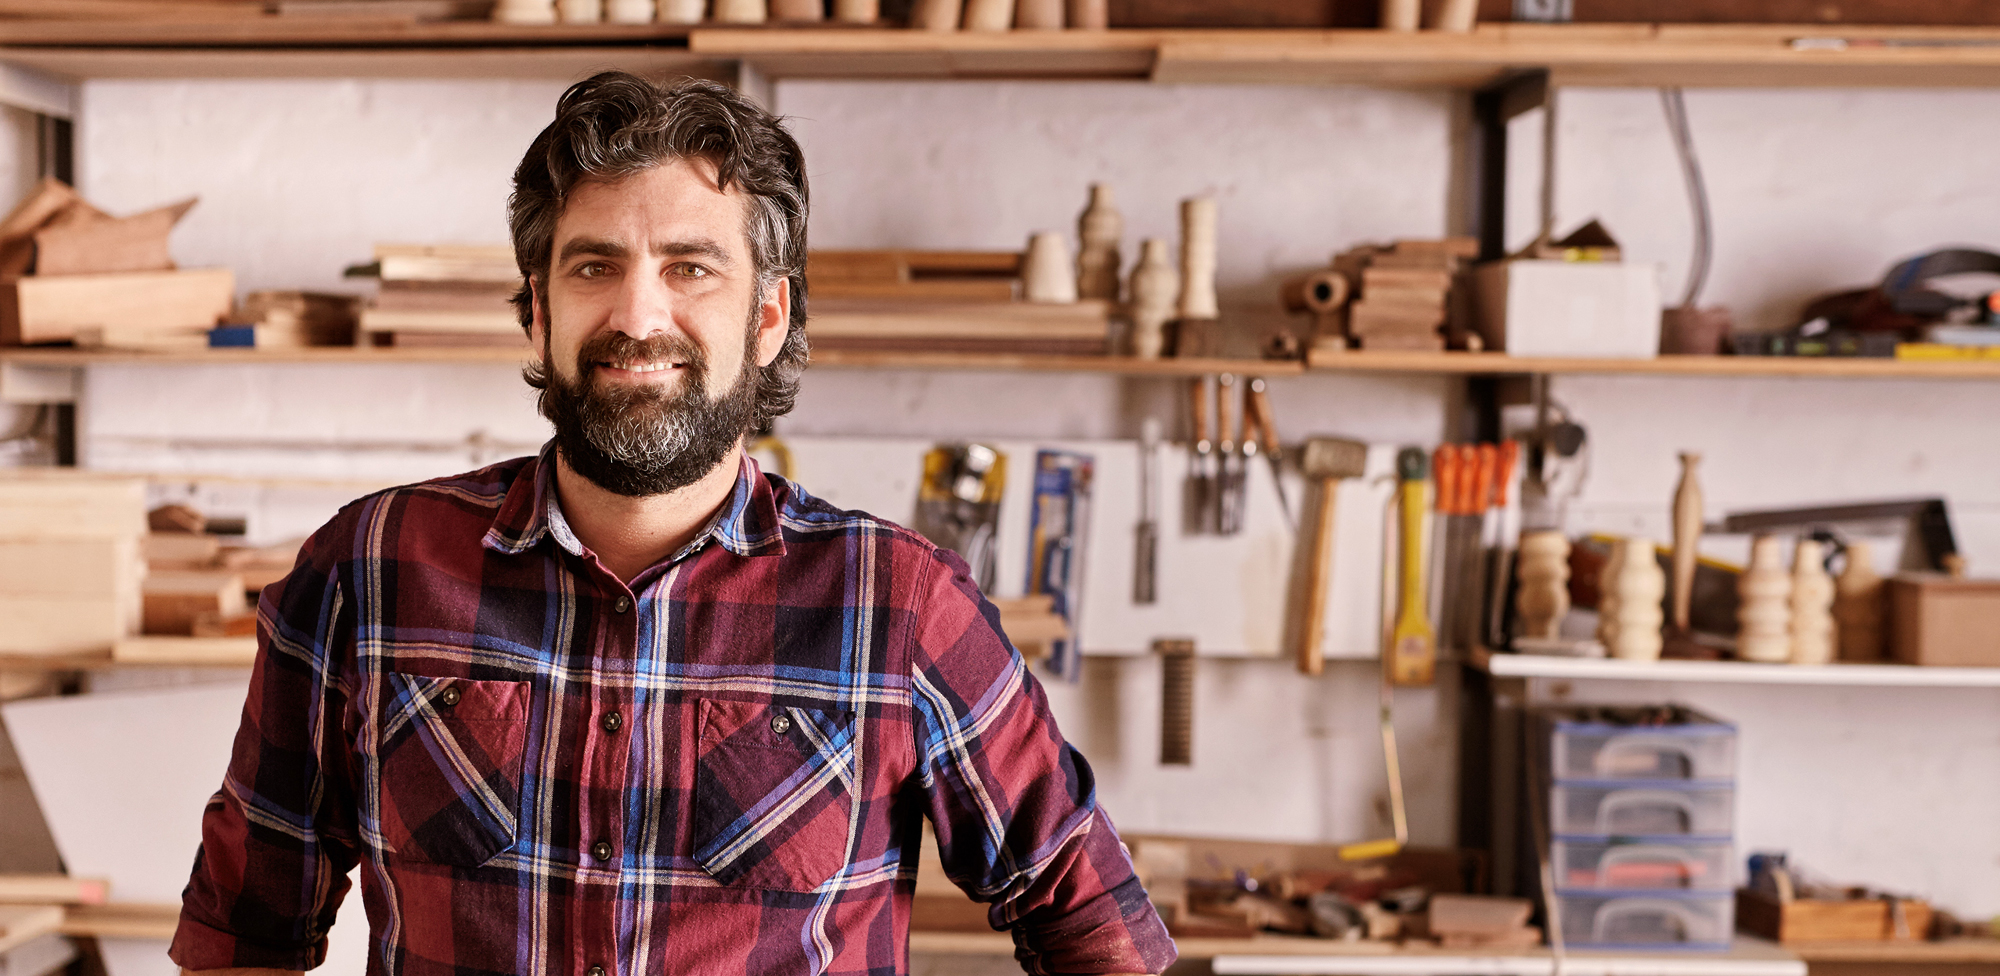 man smiling and standing in front of workshop tool wall